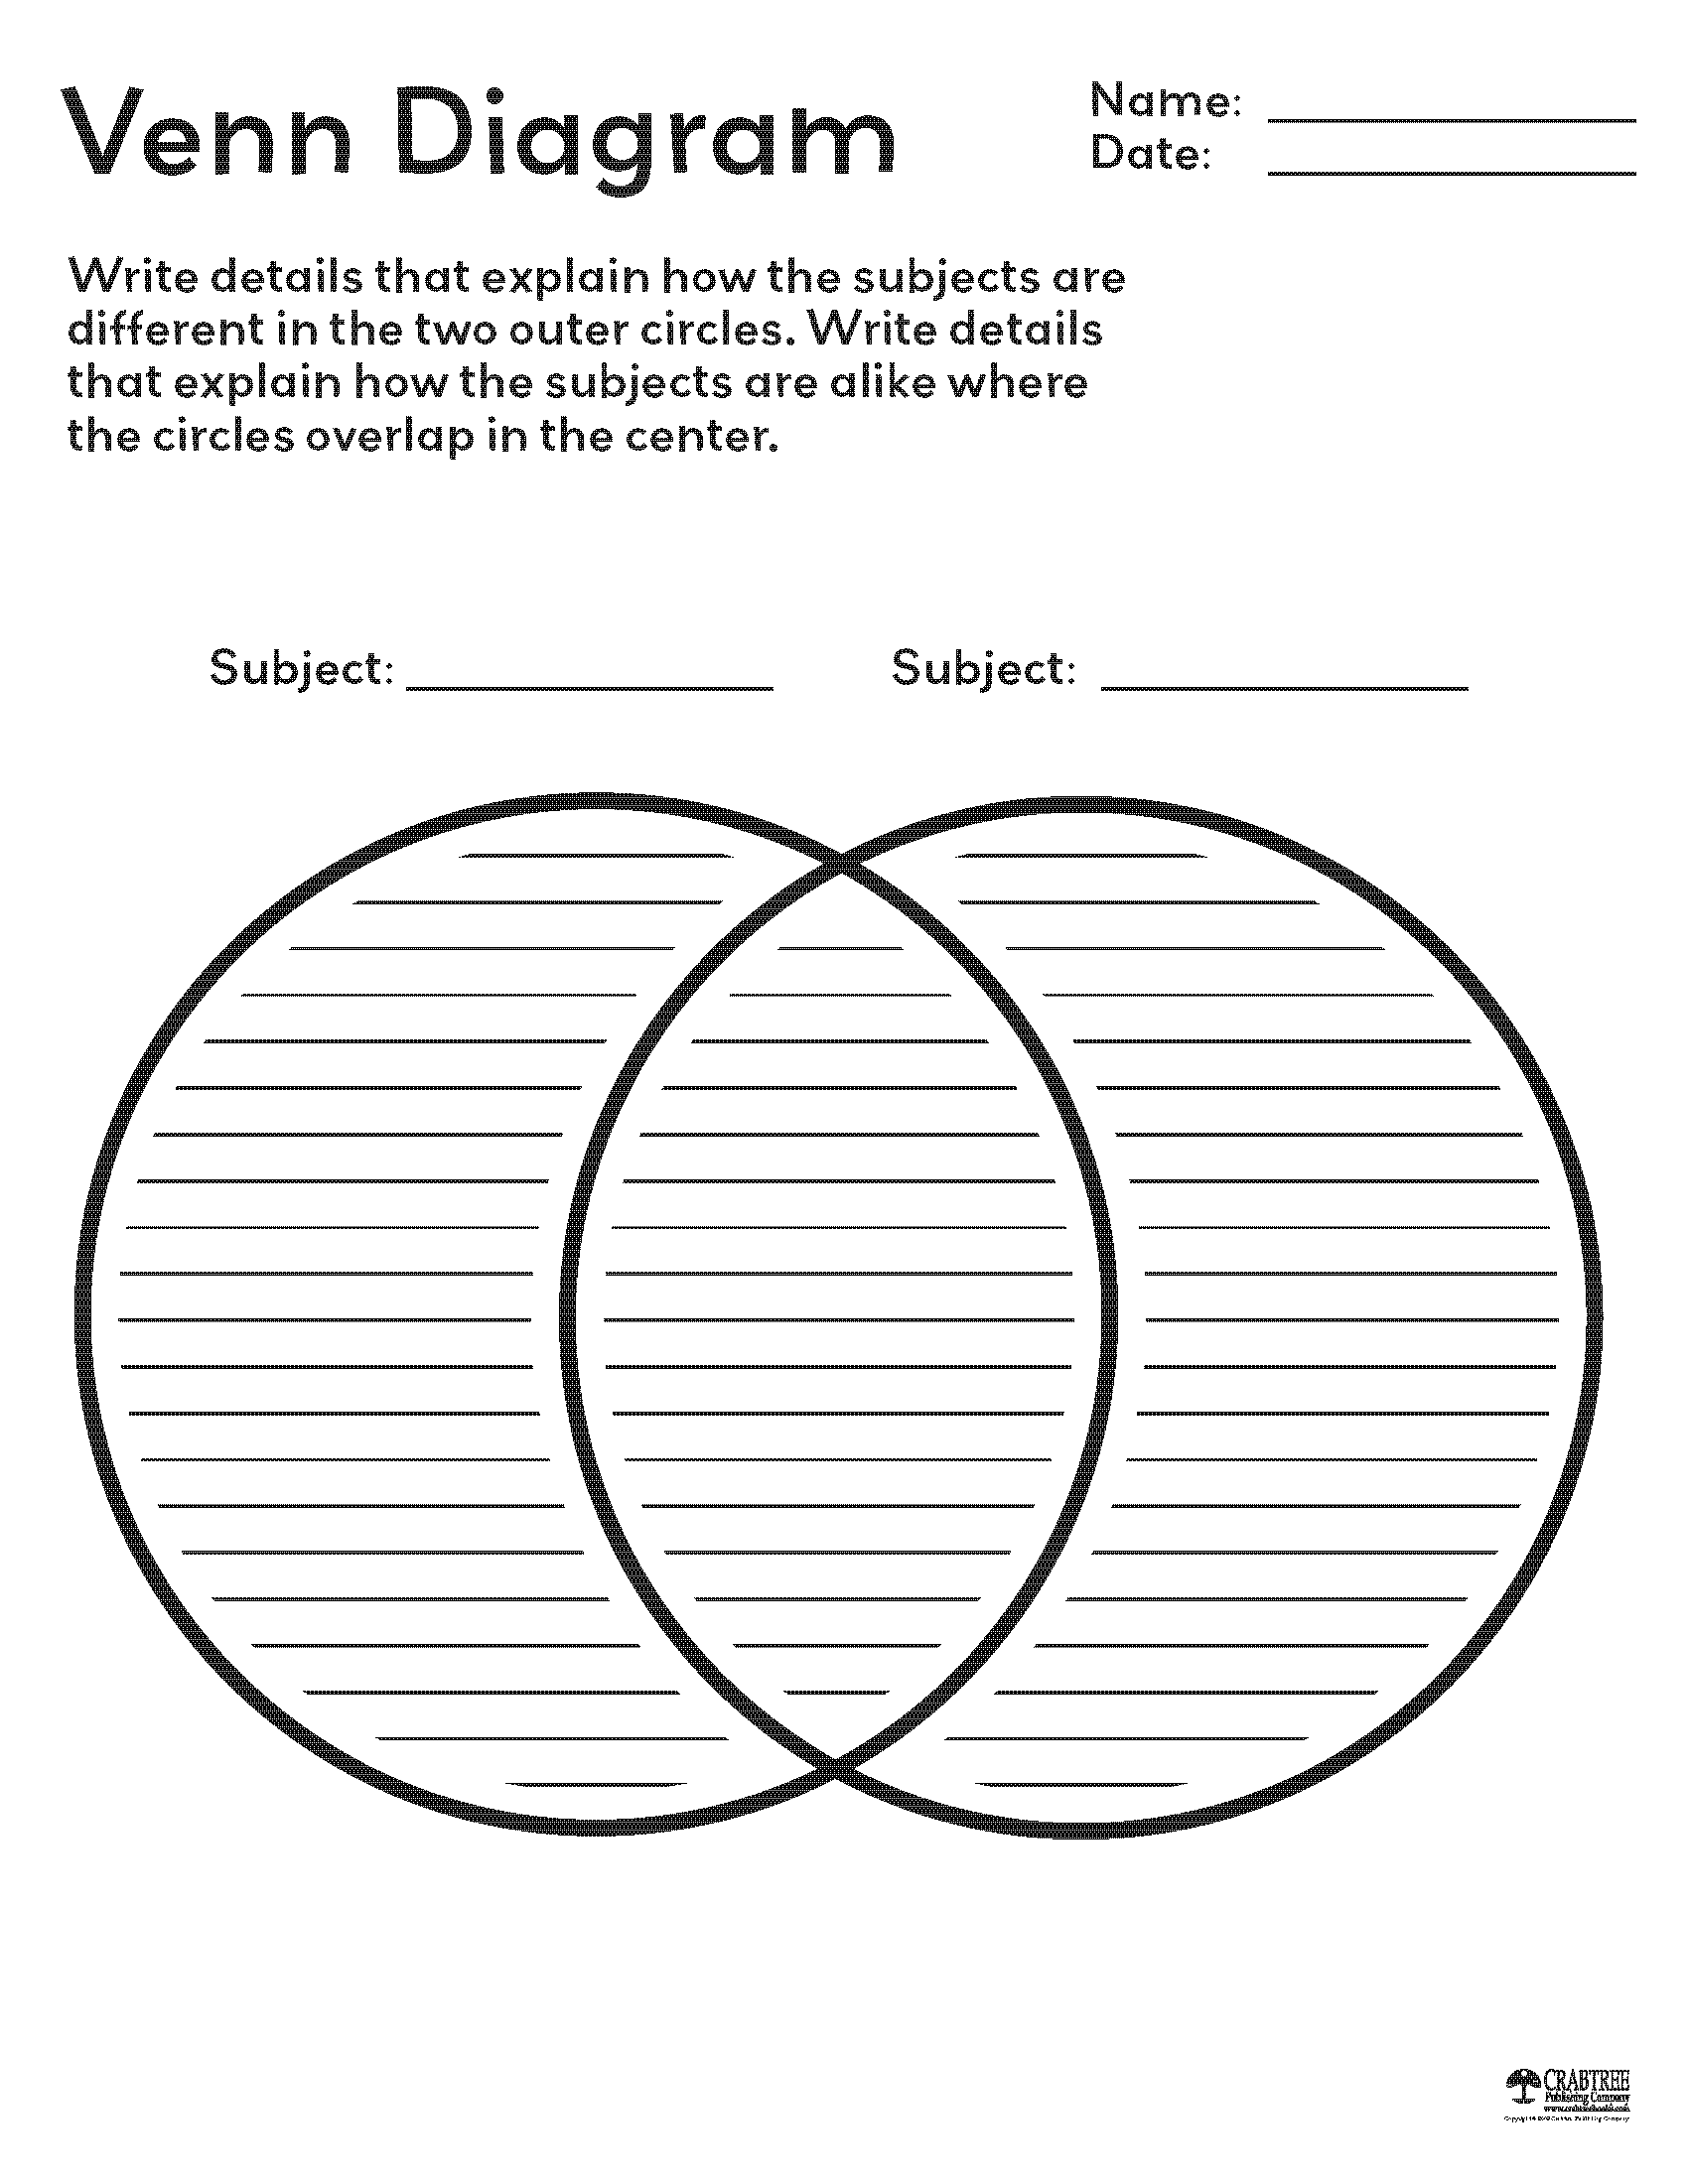 Free Printable Graphic Organizers From Crabtree Publishing Venn Diagram Graphic Organizers Venn Diagram Printable